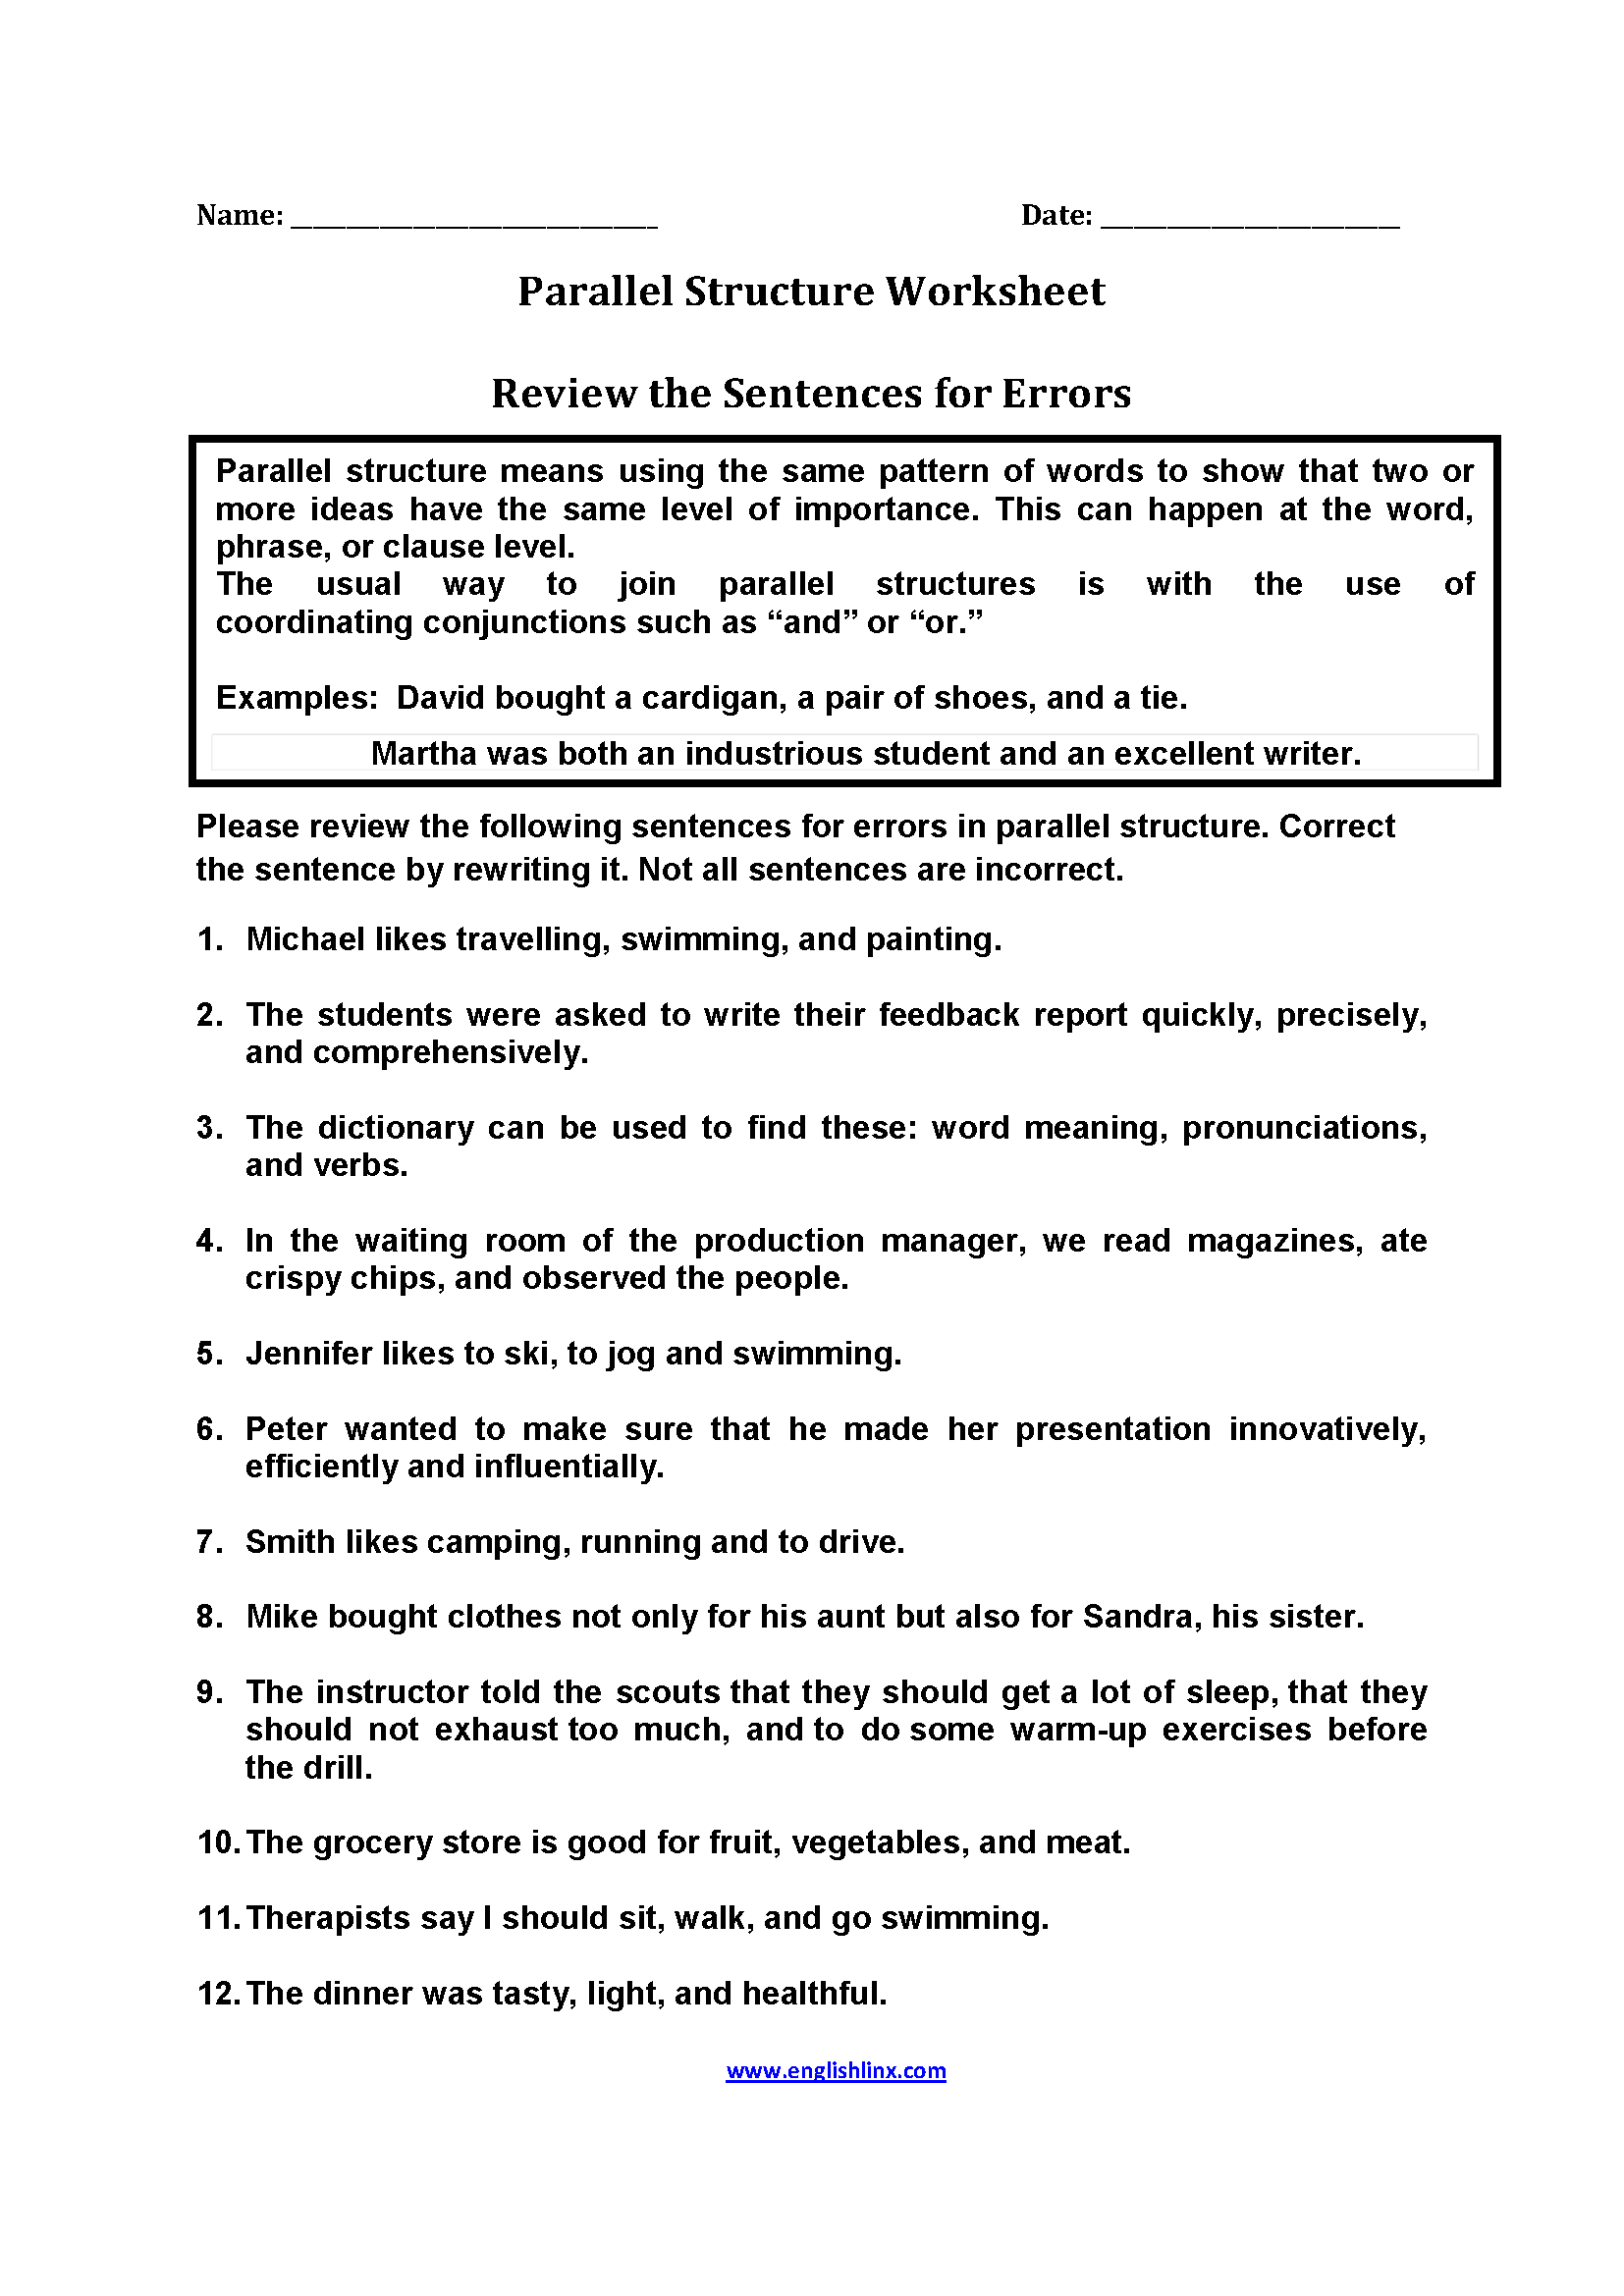 Review Sentences For Errors Parallel Worksheets